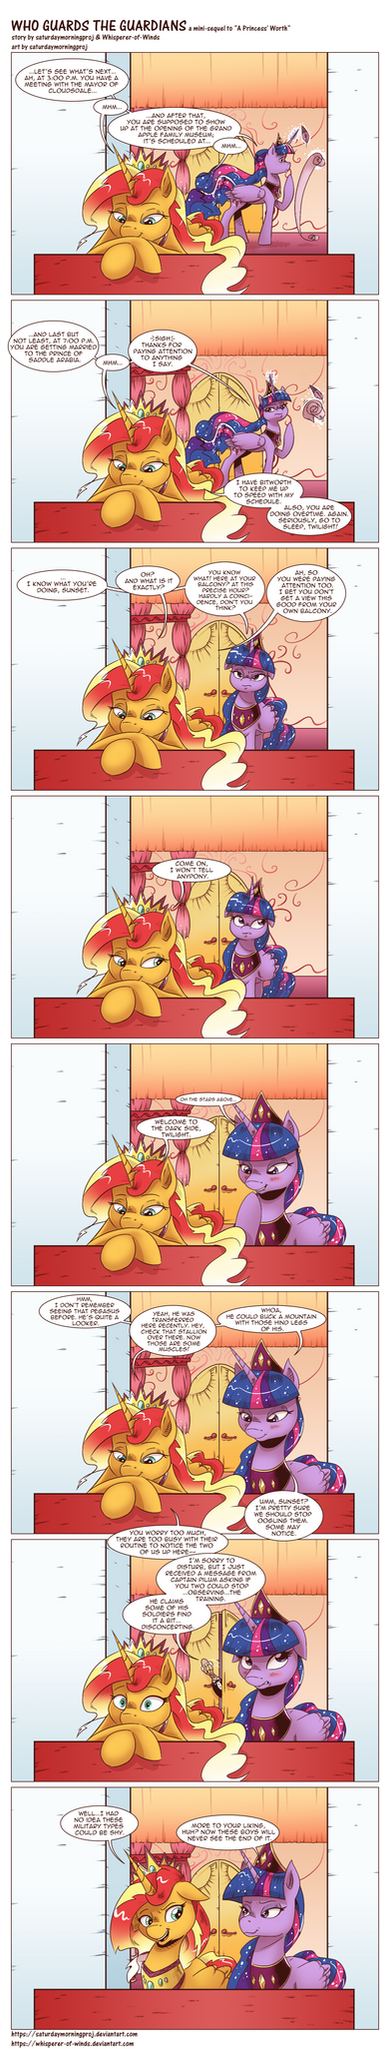 Who Guards the Guardians by saturdaymorningproj